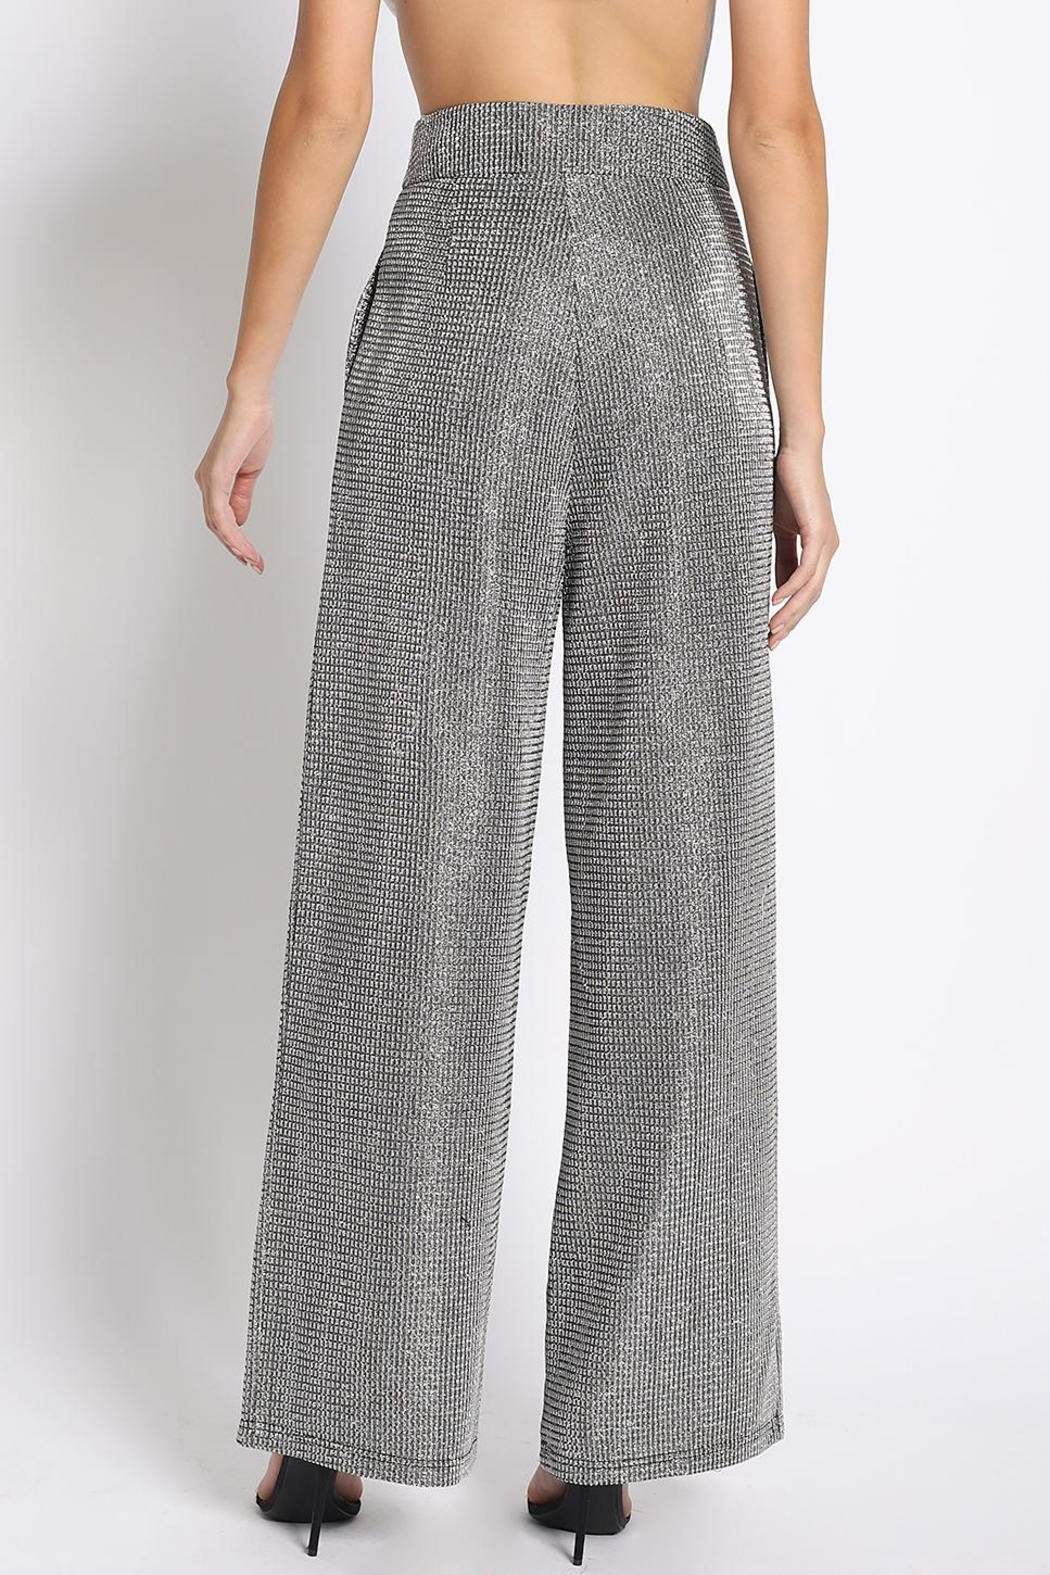 Sans Souci Silver Glitter Pants - Side Cropped Image